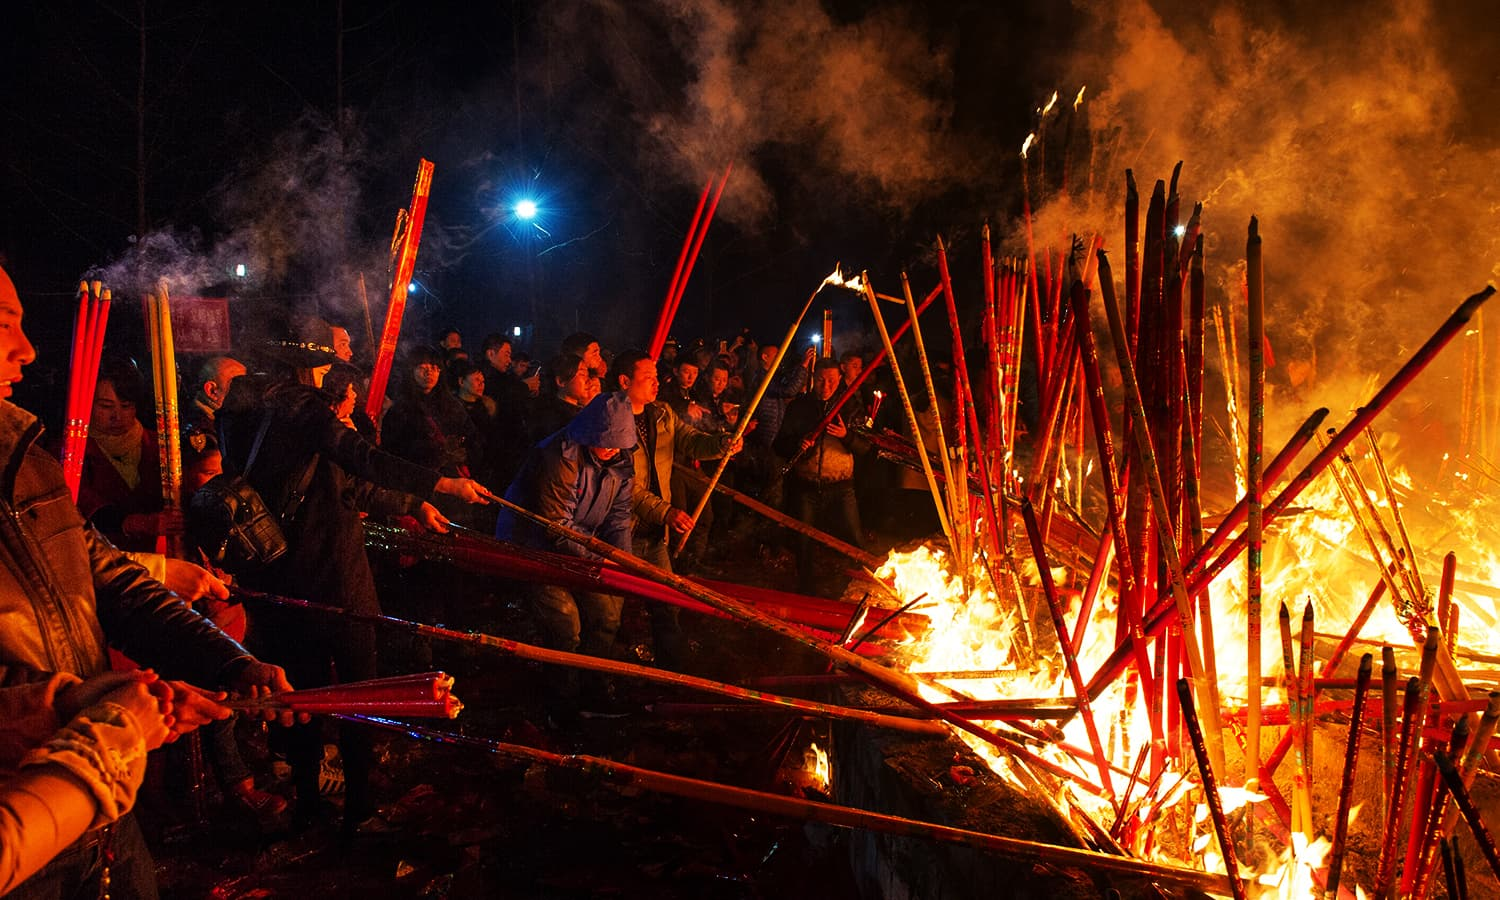 People burn incense as they pray for good fortune at the beginning of the Chinese Lunar New Year, at Wuyou temple in Leshan, Sichuan province, February 8, 2016. ─ Reuters